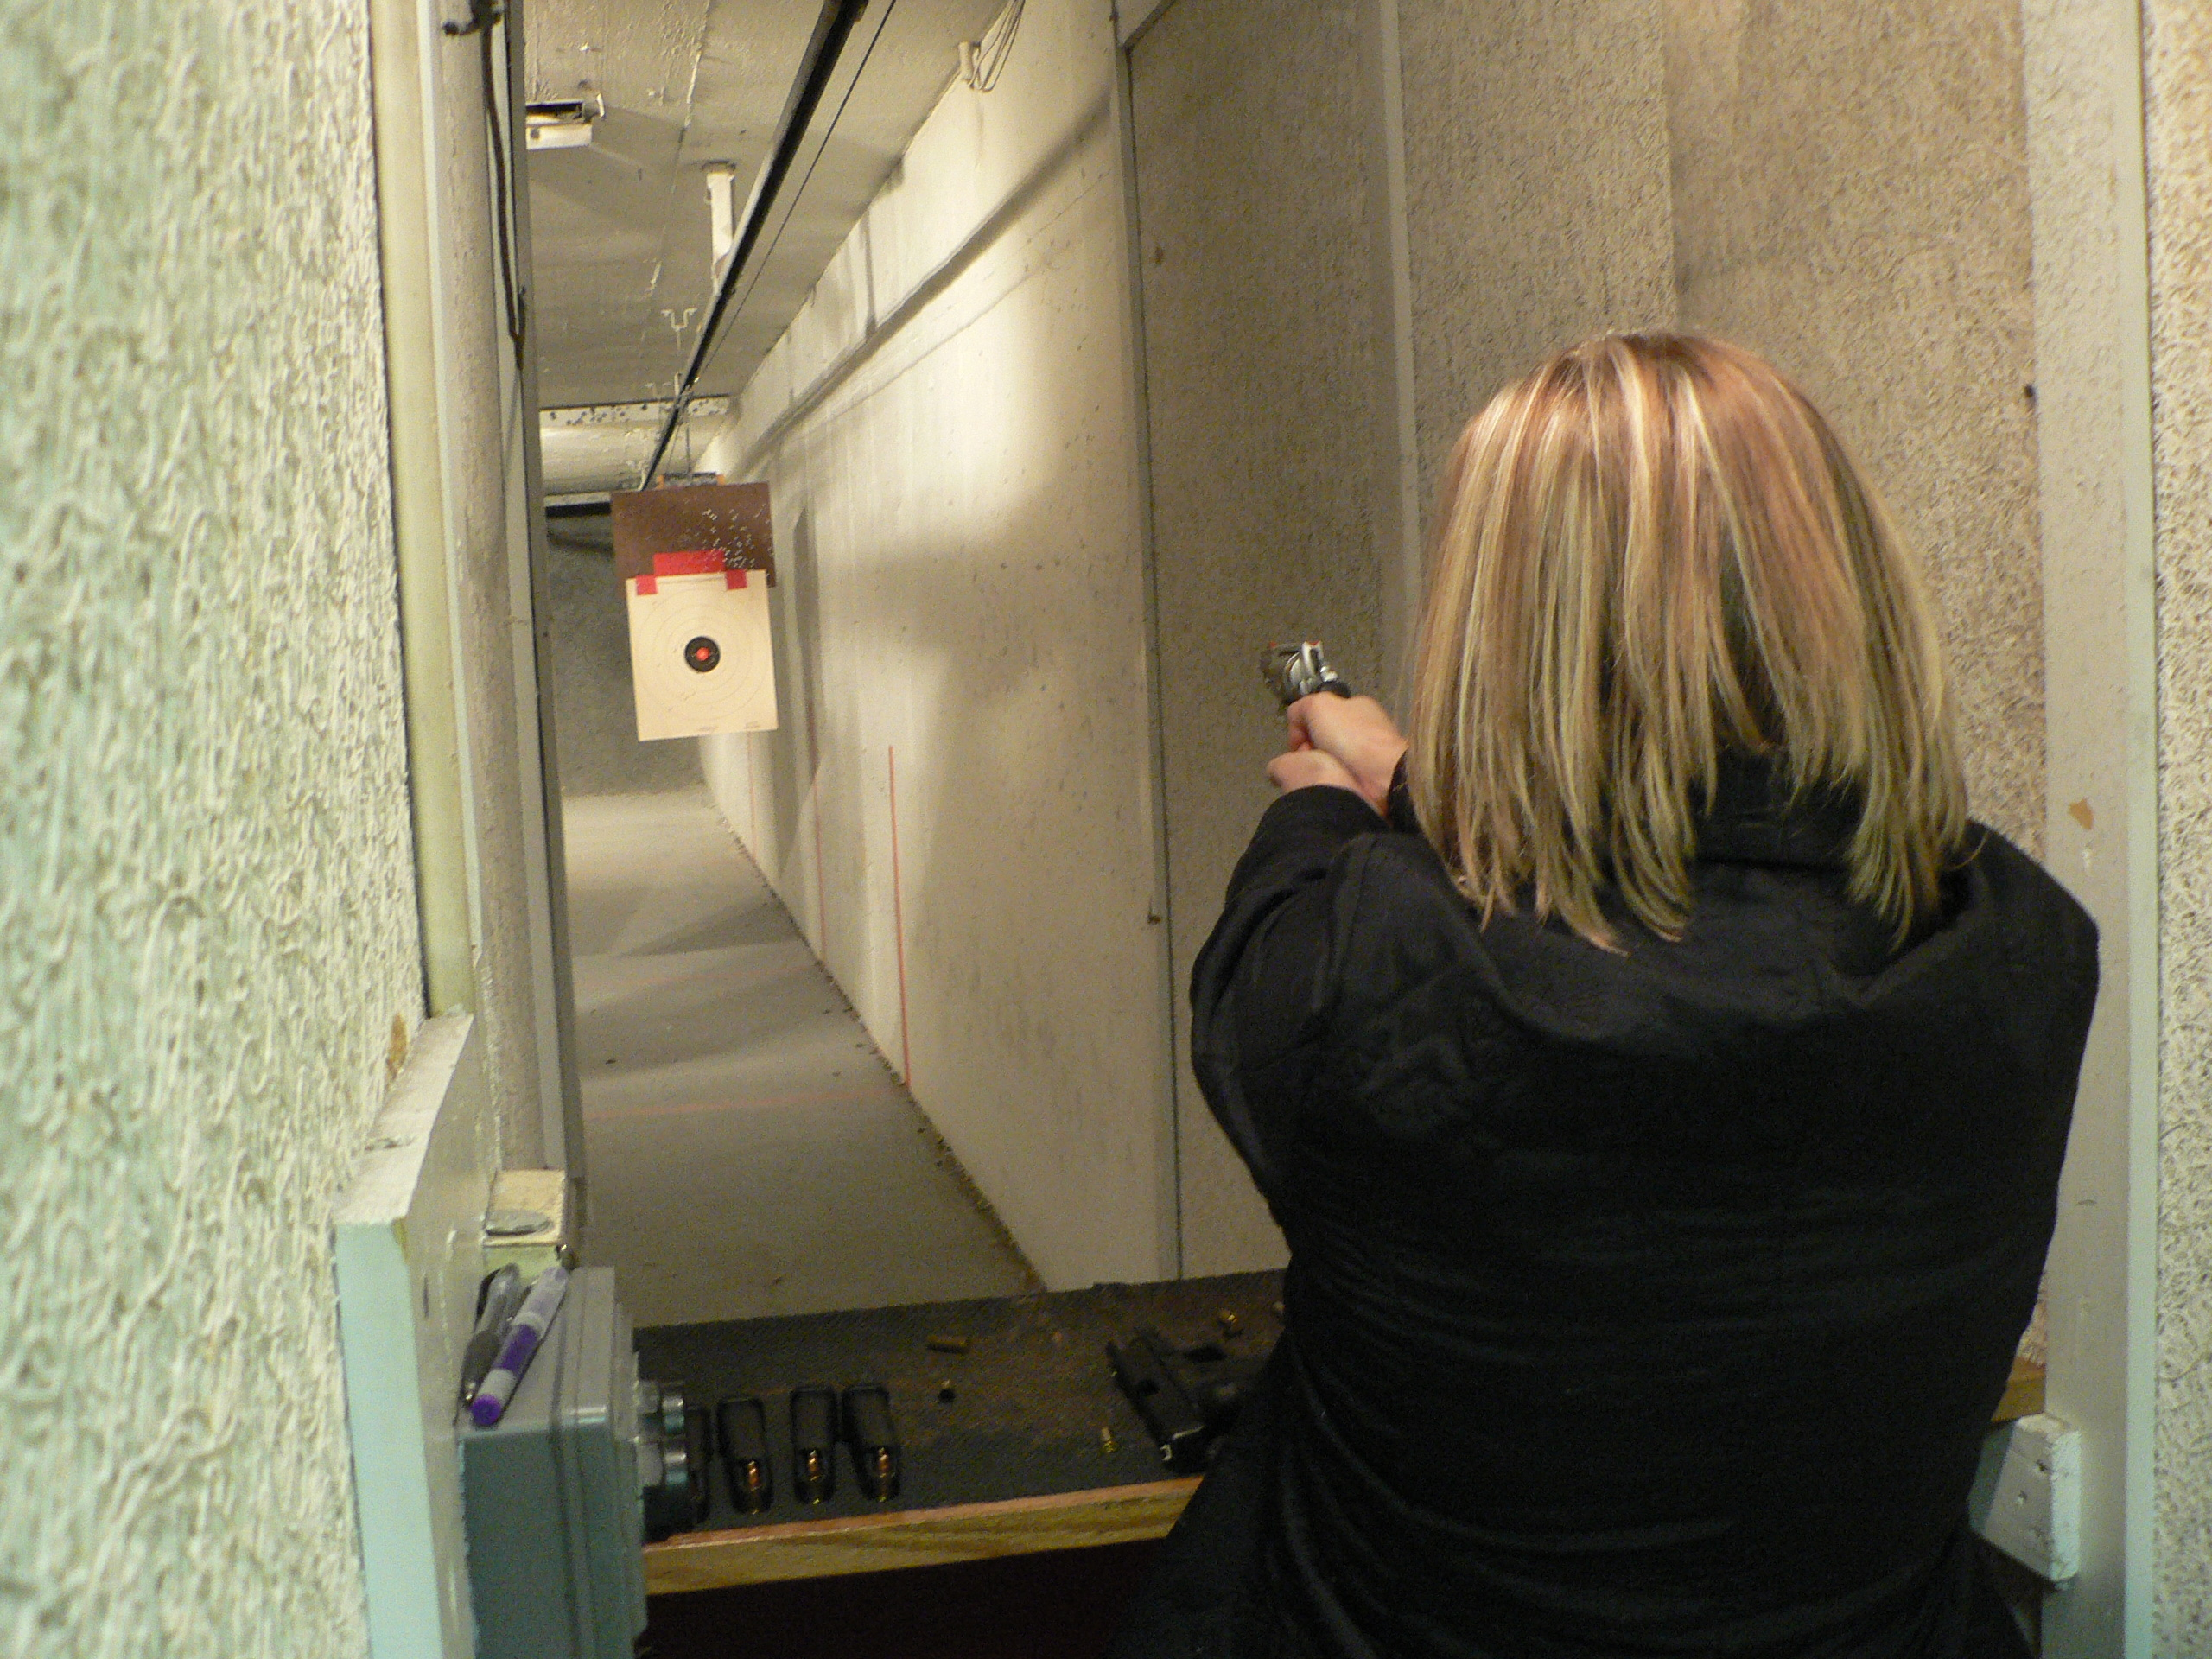 lead exposure is a concern for shooters—especially for the mothers.